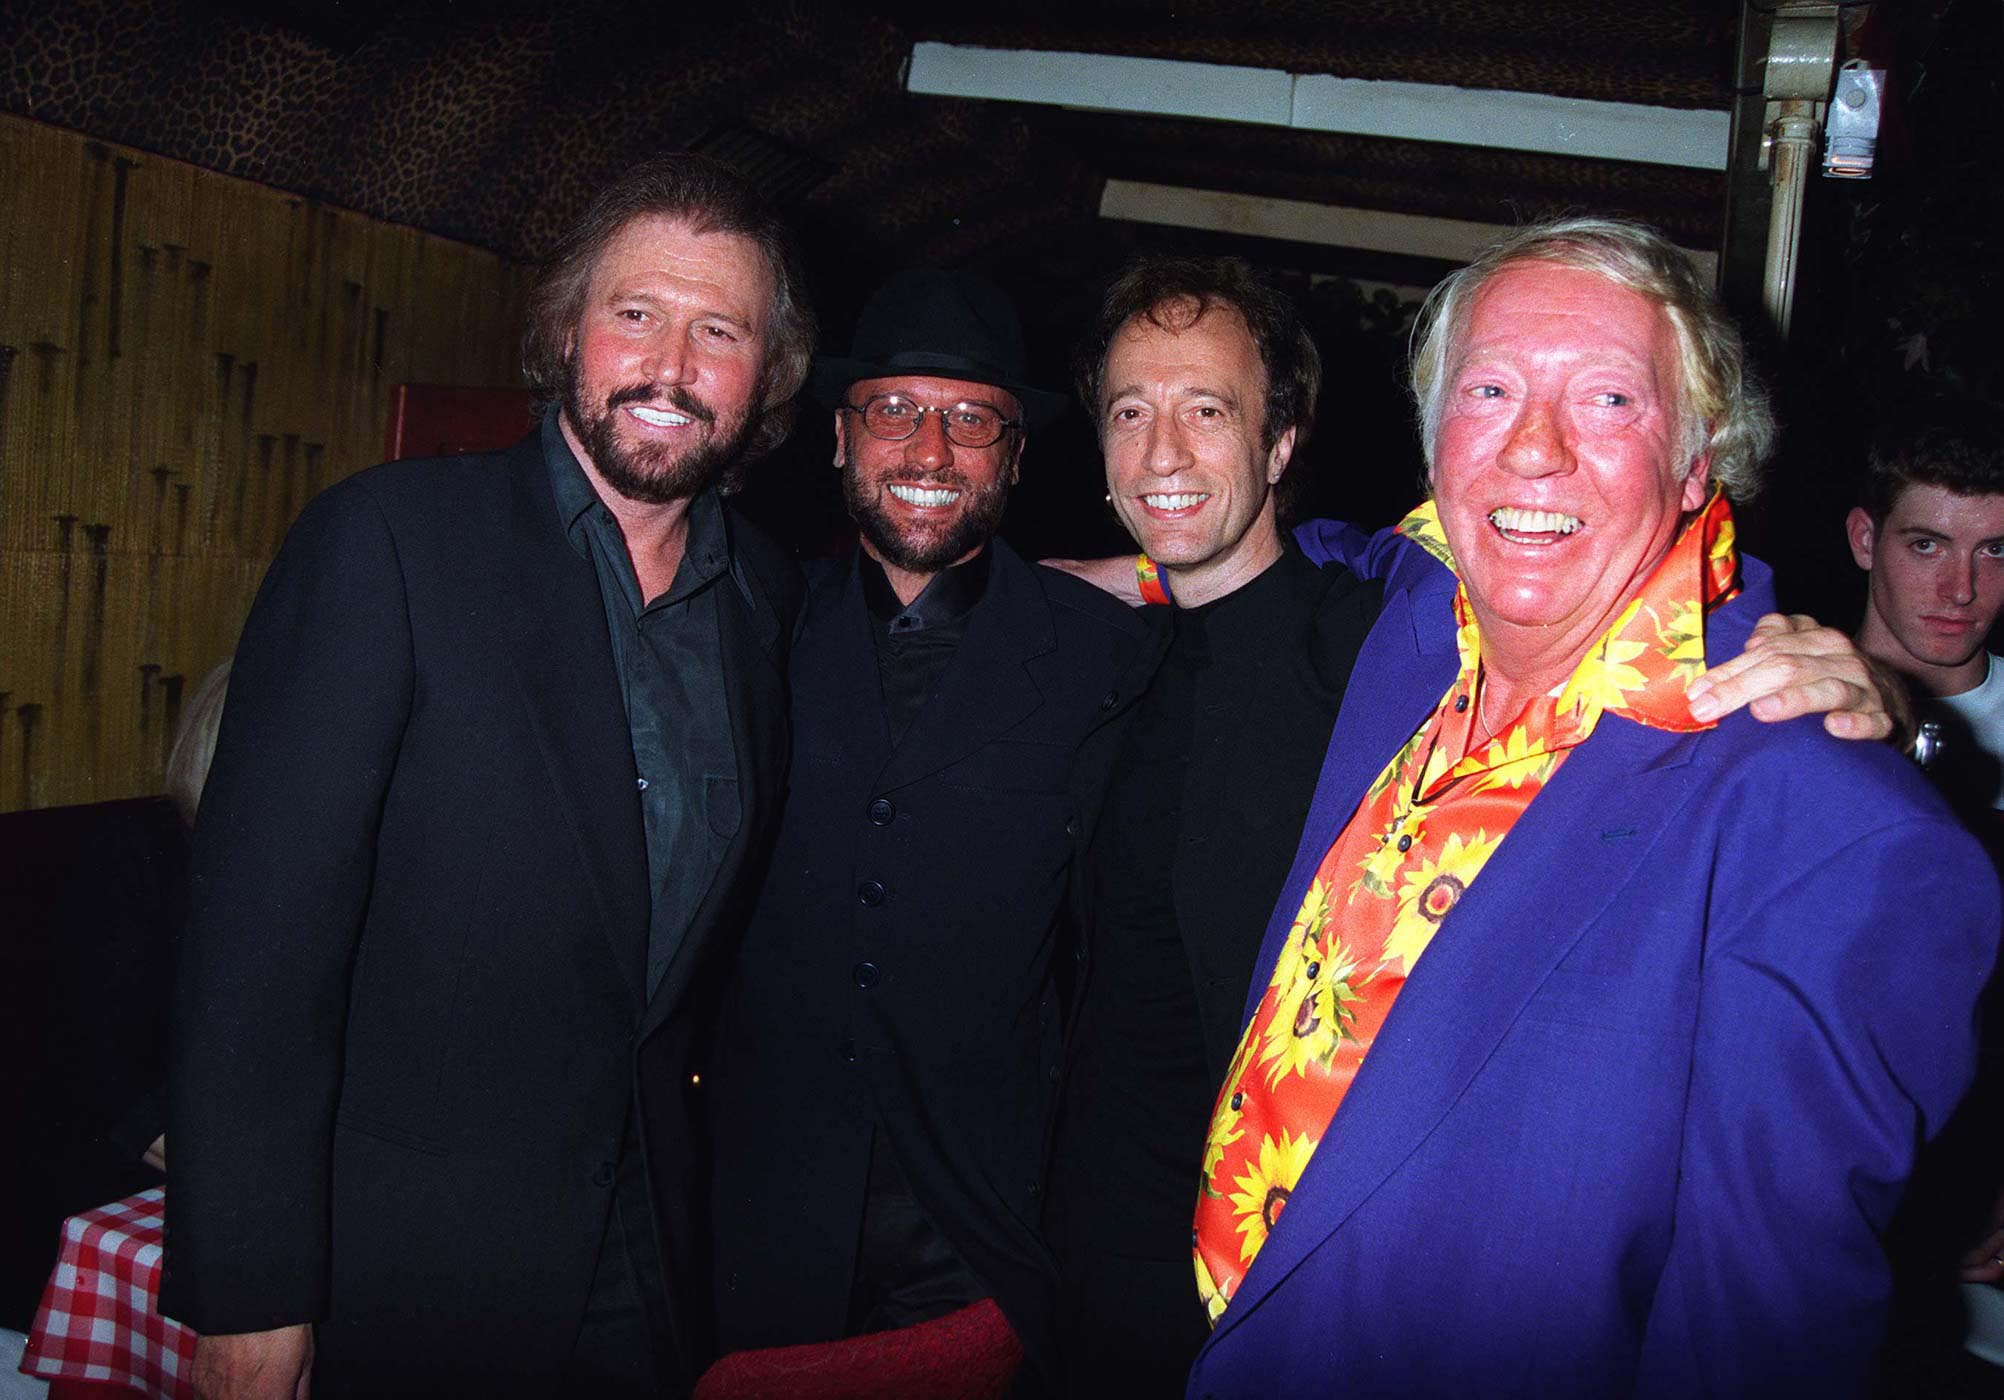 Barry, Maurice and Robin Gibb with Robert Stigwood at Barry Gibb's 50th Birthday In London in 1996